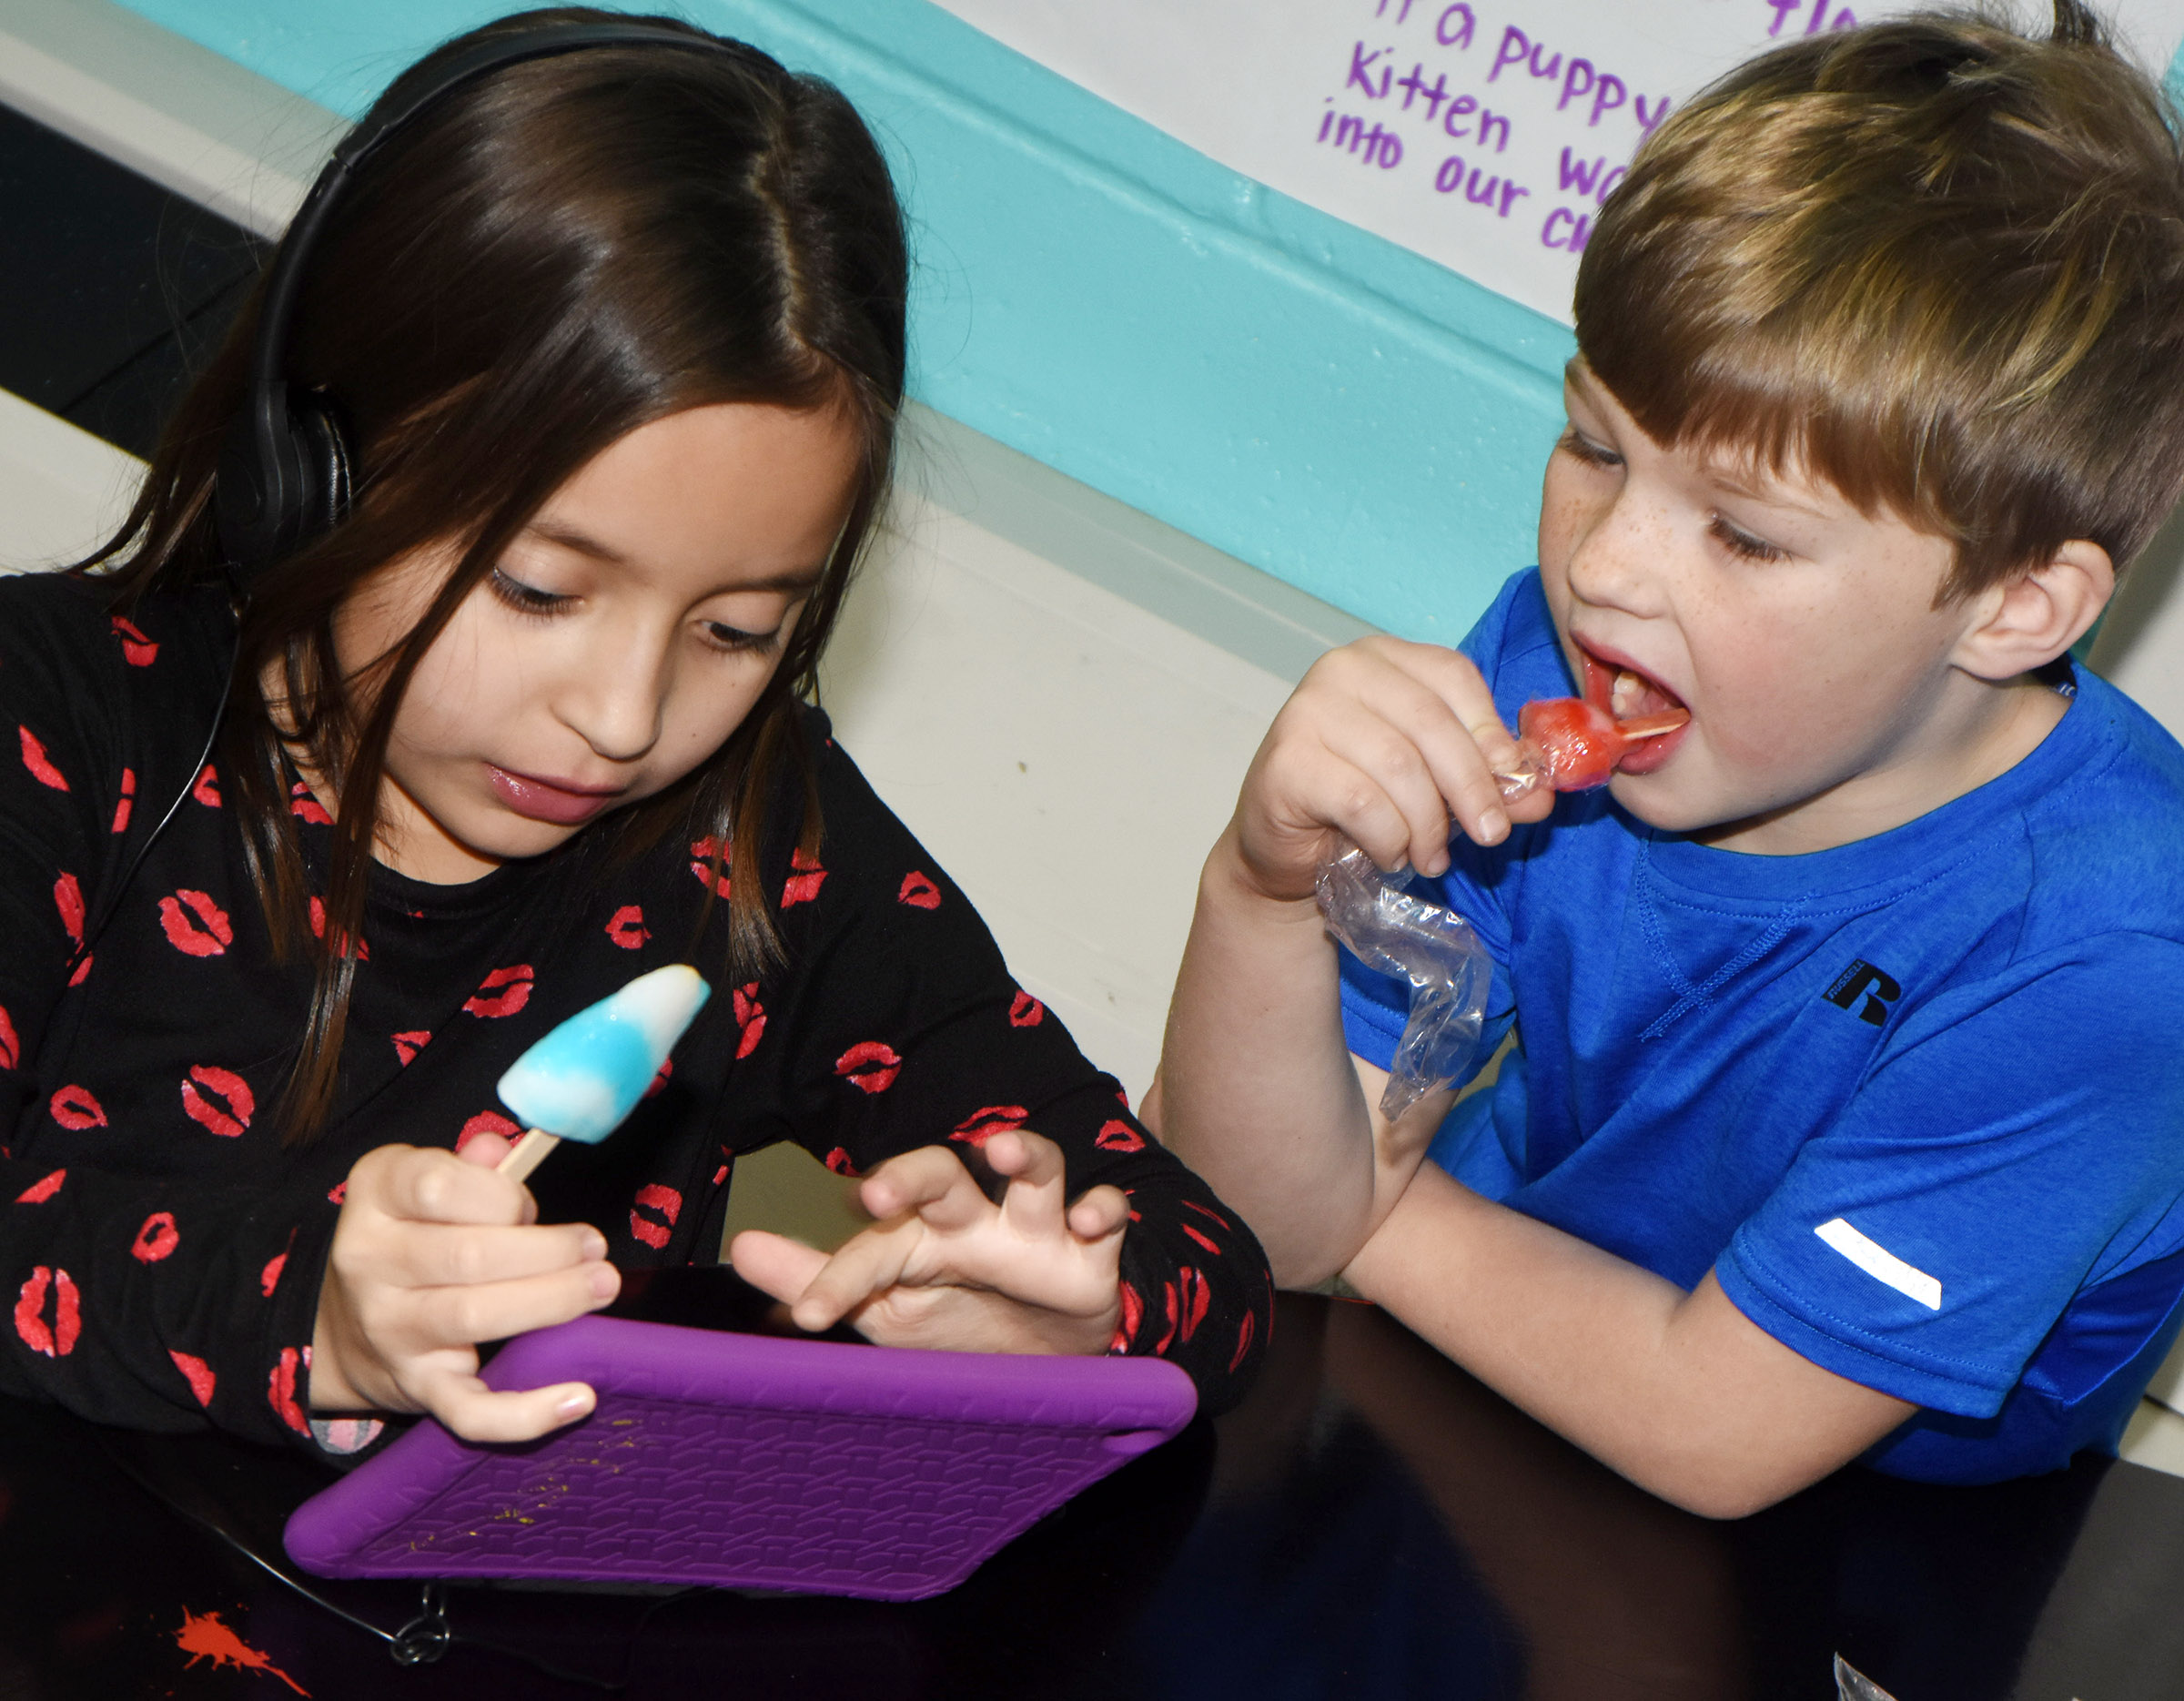 CES first-graders Gabriella Tate, at left, and Landry Brown enjoy popsicles together as they play games on a tablet.